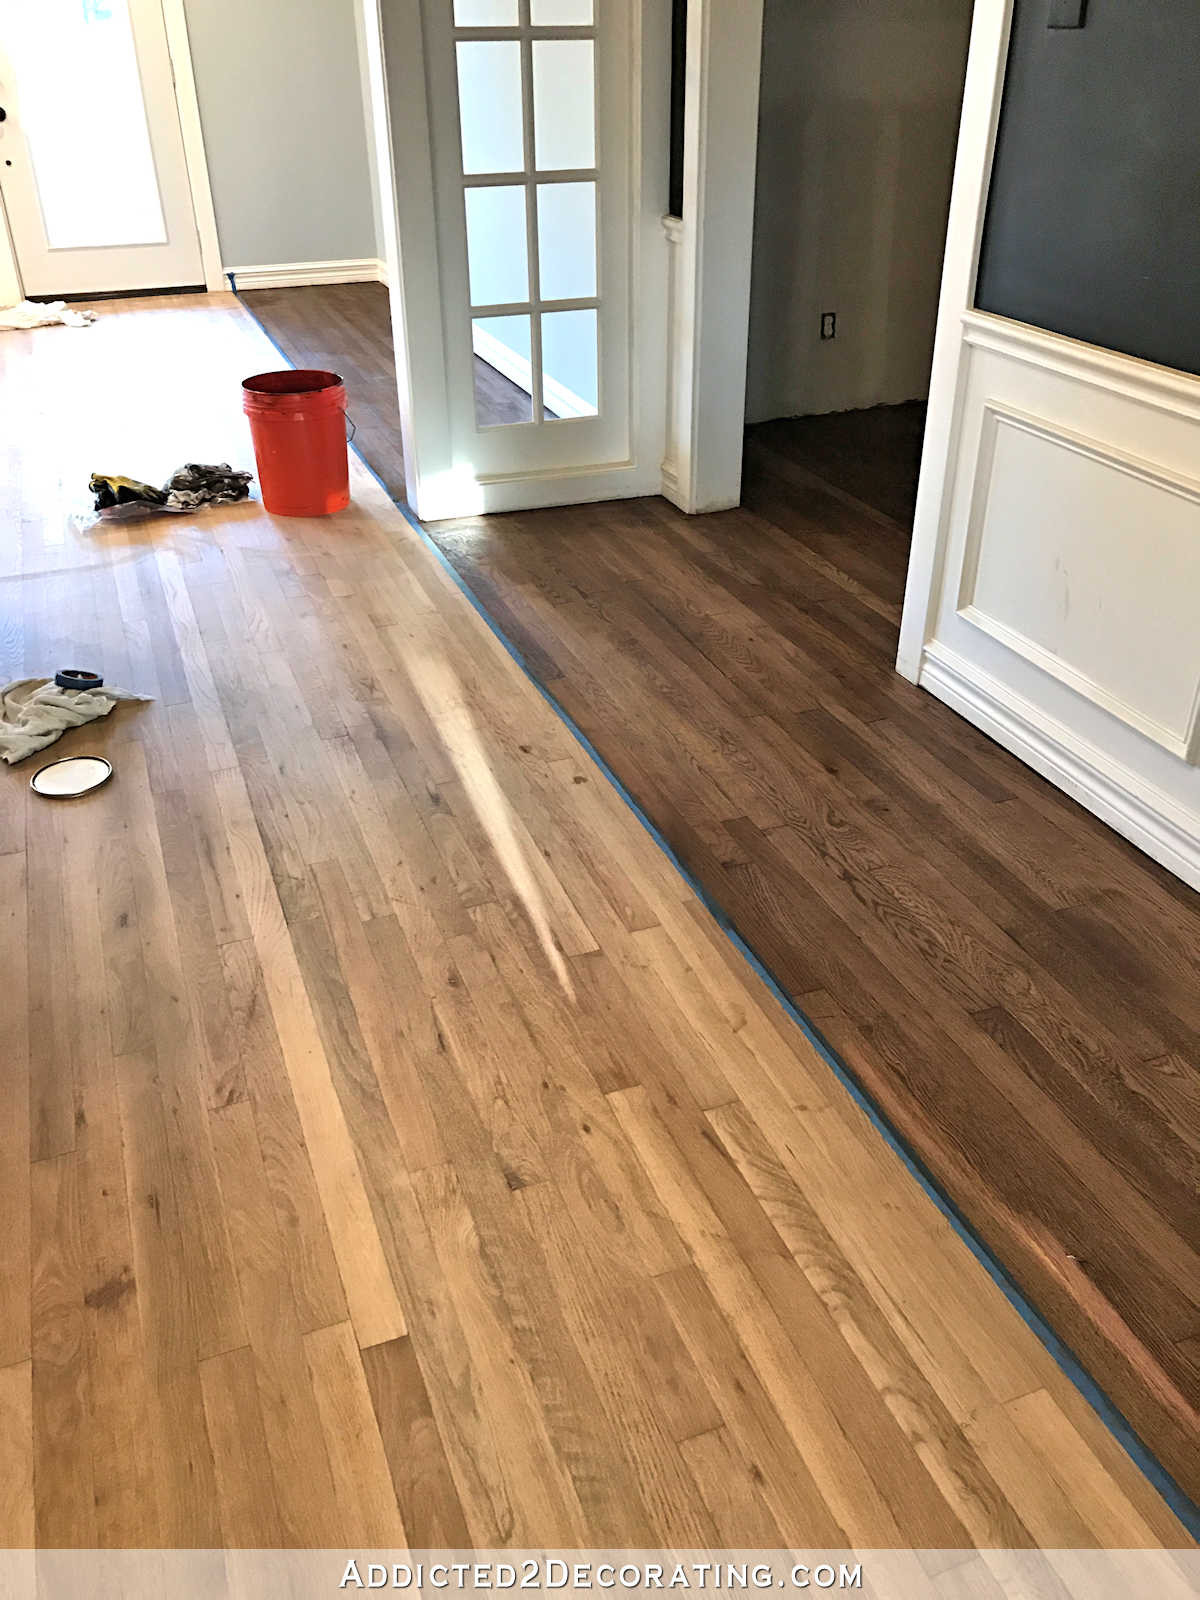 multi colored hardwood floors of adventures in staining my red oak hardwood floors products process with staining red oak hardwood floors 6 stain on partial floor in entryway and music